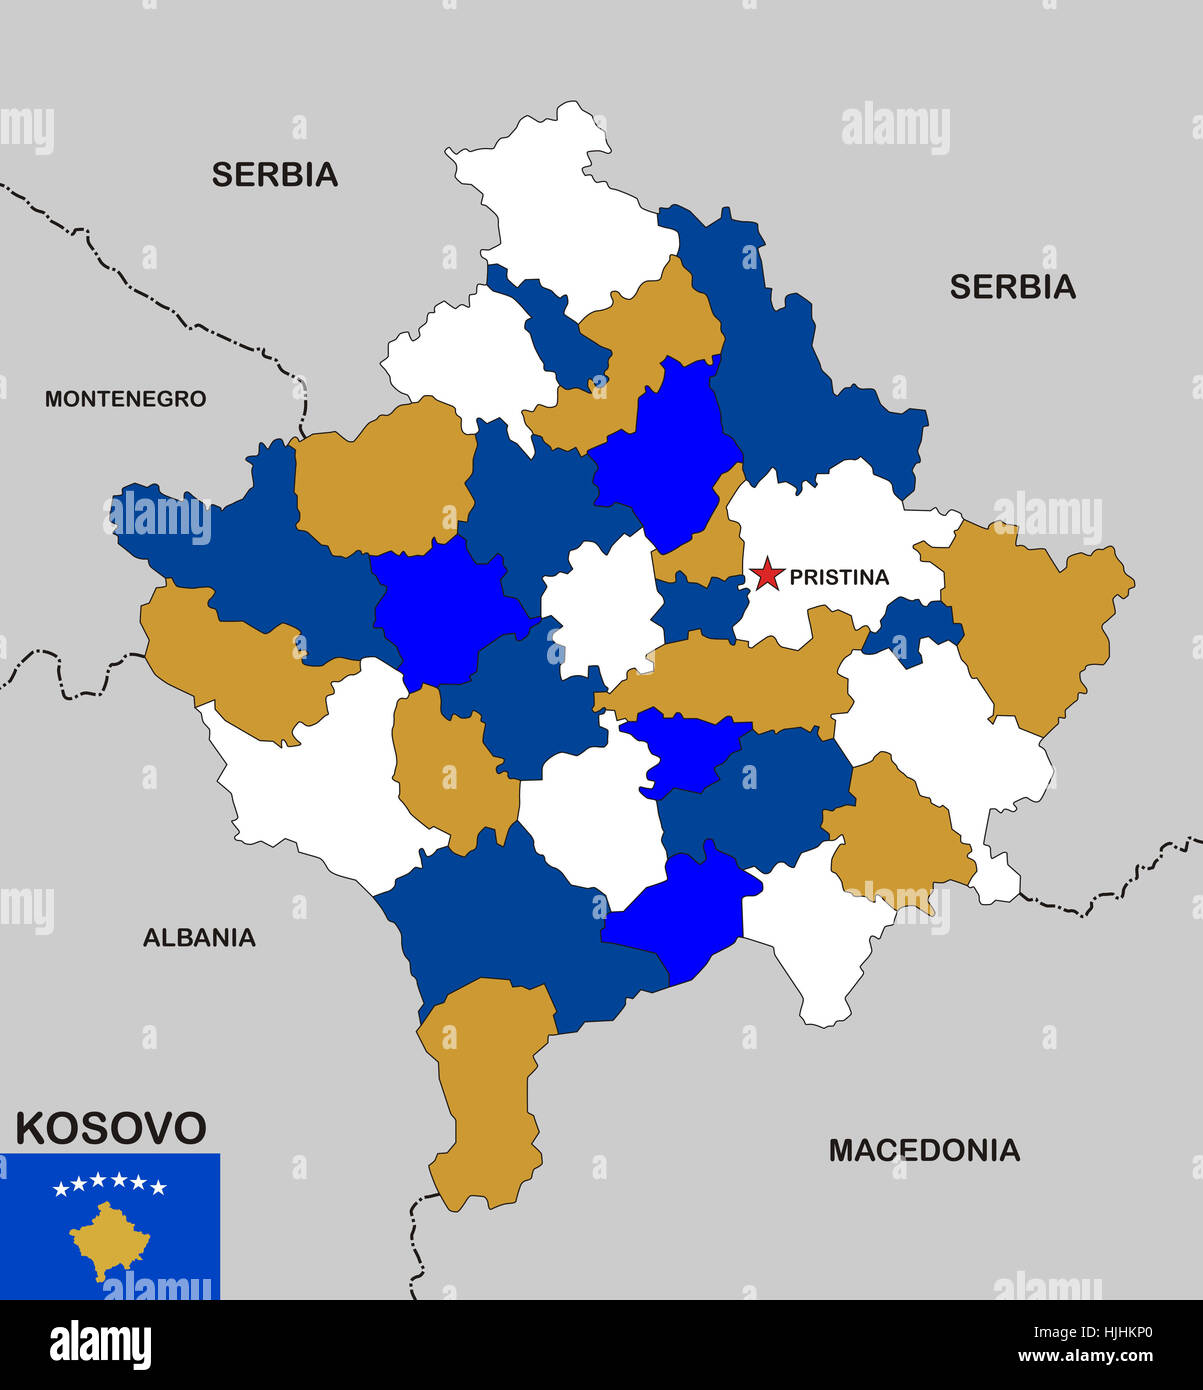 Kosovo Map In World. political  flag country globe planet earth world sign kosovo geography